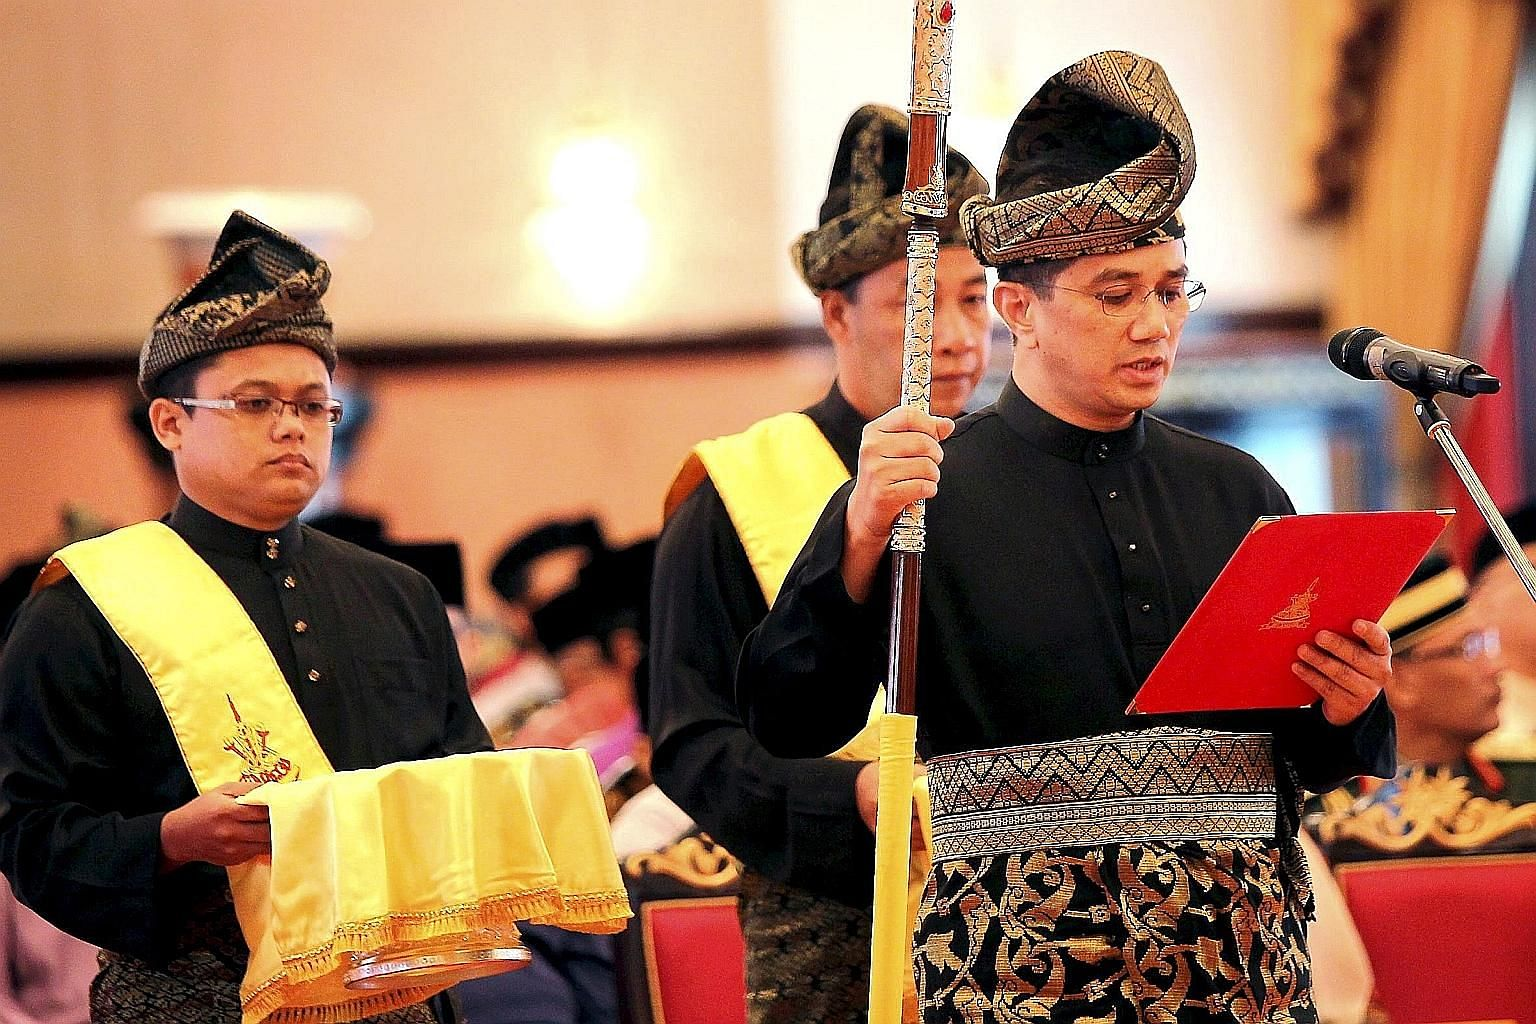 PKR deputy president Azmin Ali taking his oath as the new Selangor Menteri Besar in September last year. Mr Azmin and his party leader Wan Azizah Wan Ismail are locked in an internal party conflict.